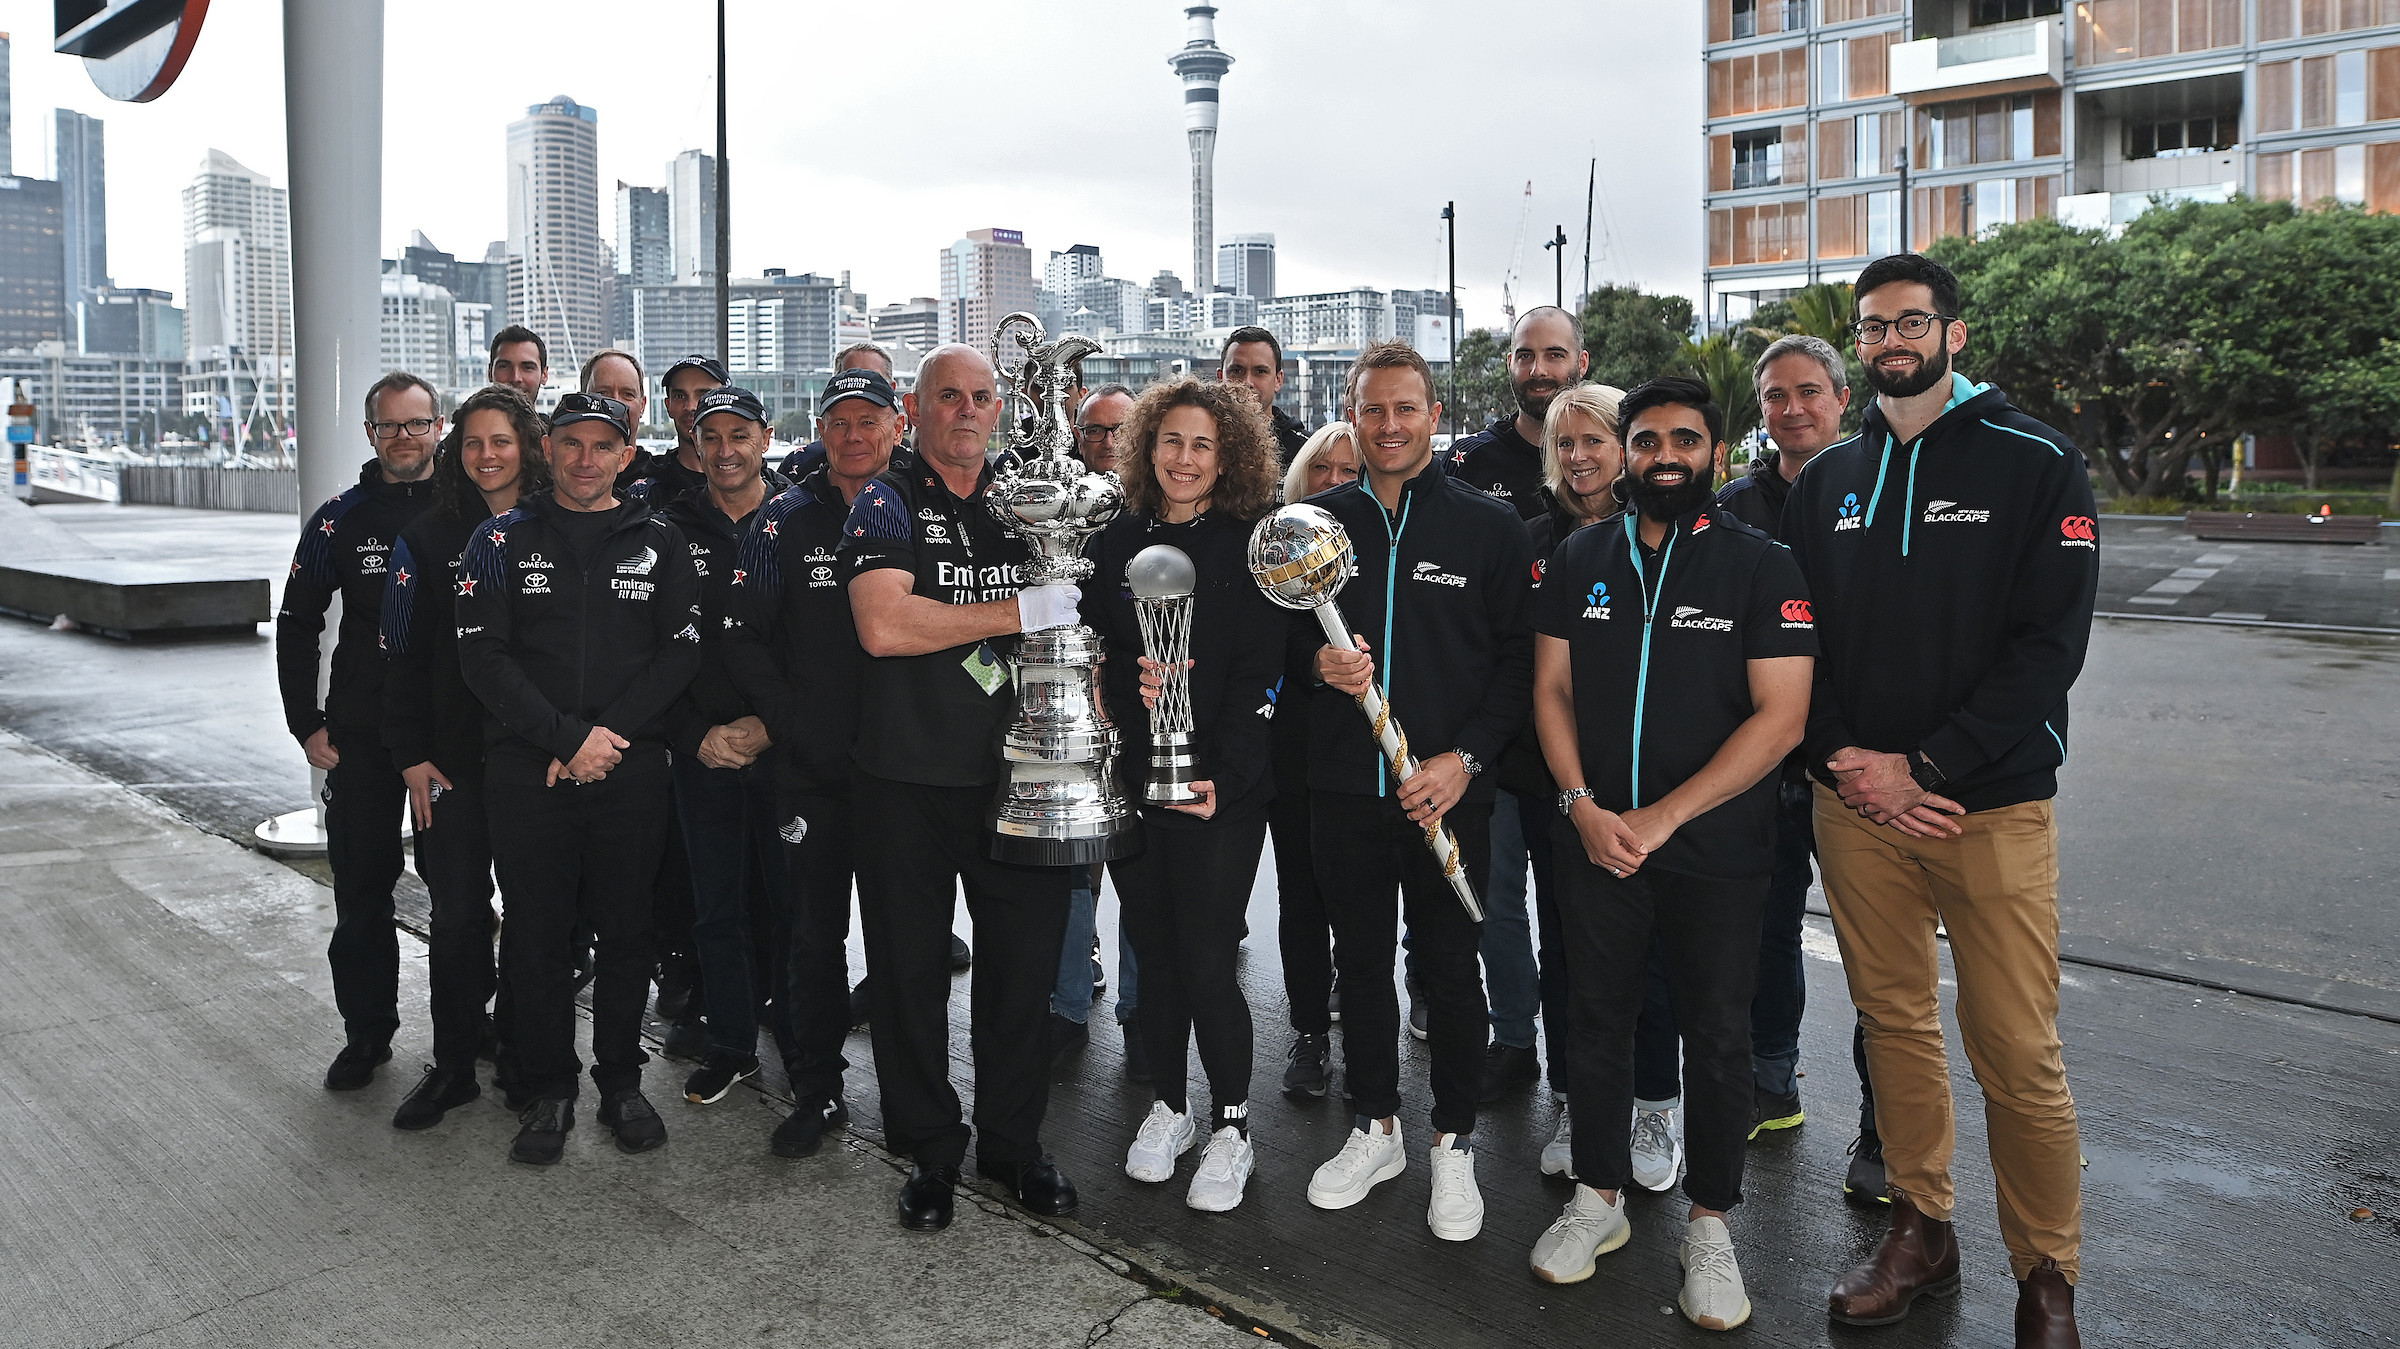 New Zealand's WTC winning squad starts nation-wide mace tour; BlackCaps share pictures on social media